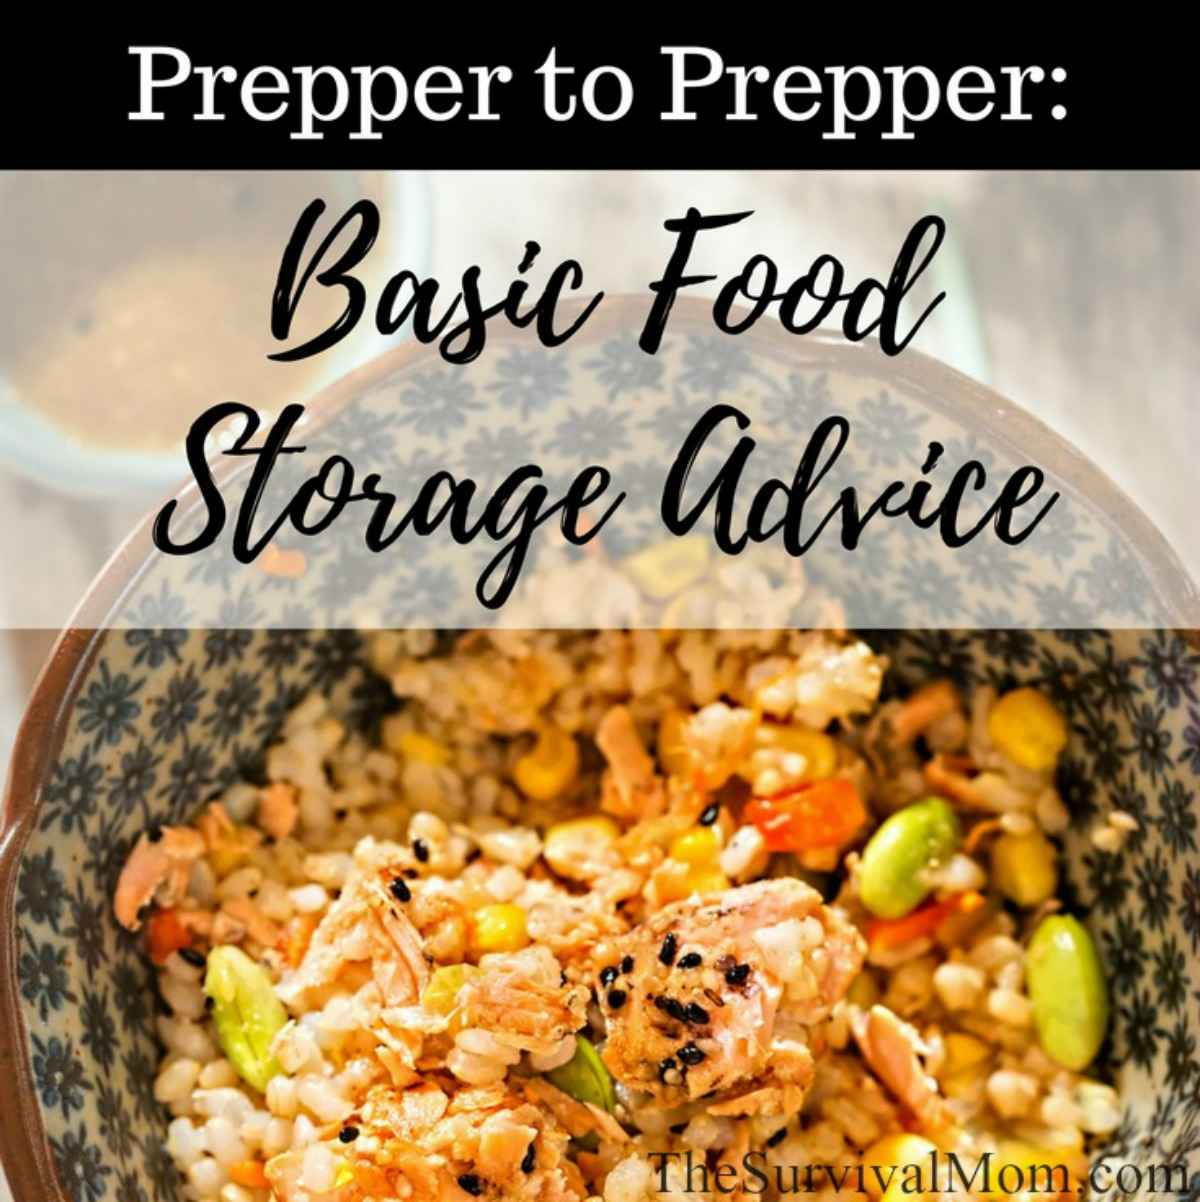 Prepper to Prepper Basic Food Storage Advice via The Survival Mom